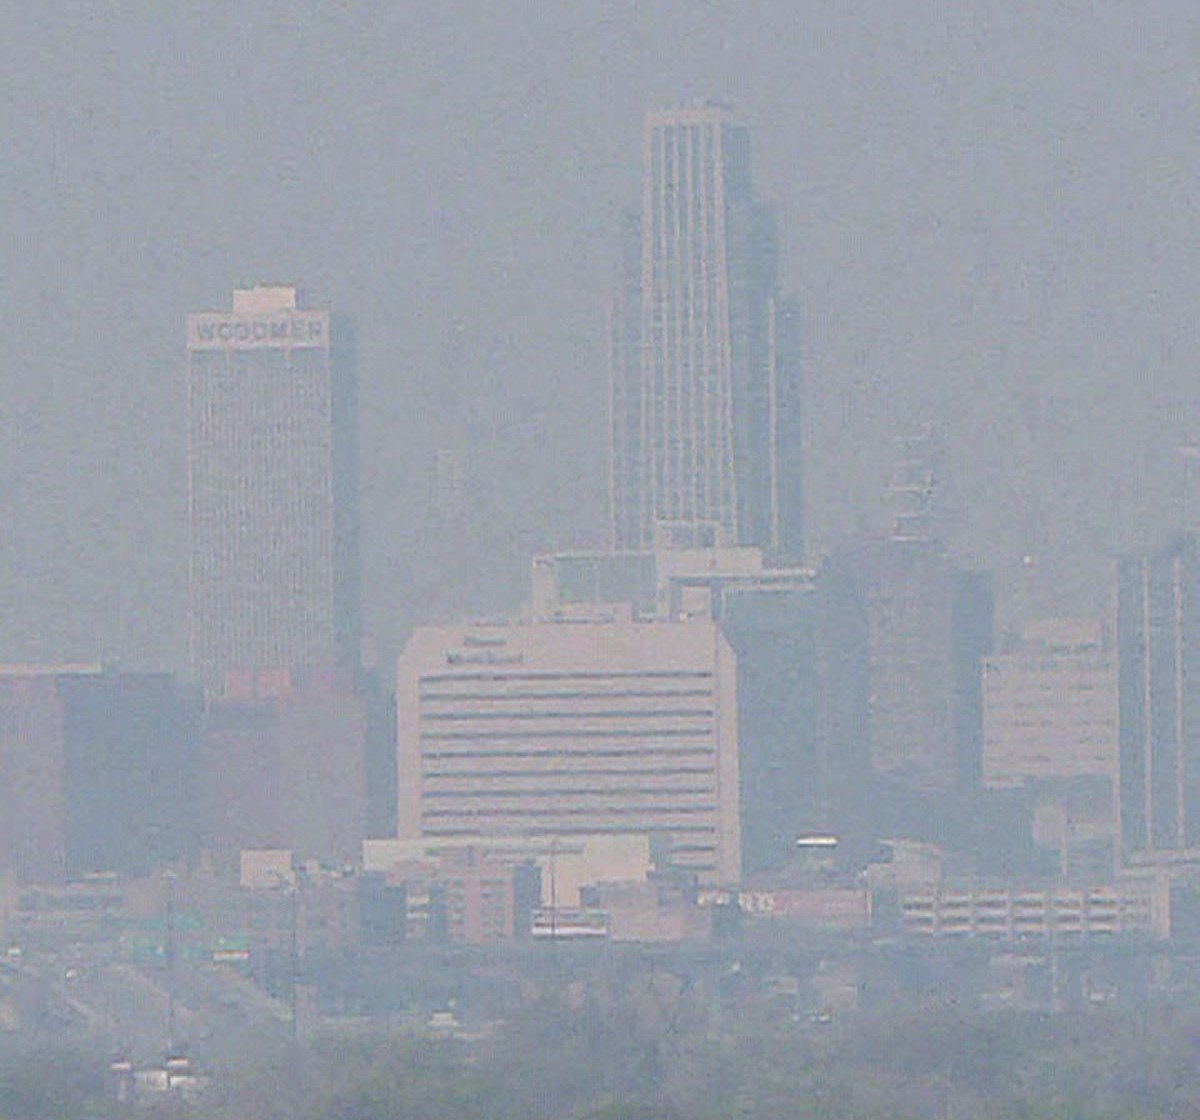 Health officials warn of unhealthy air quality